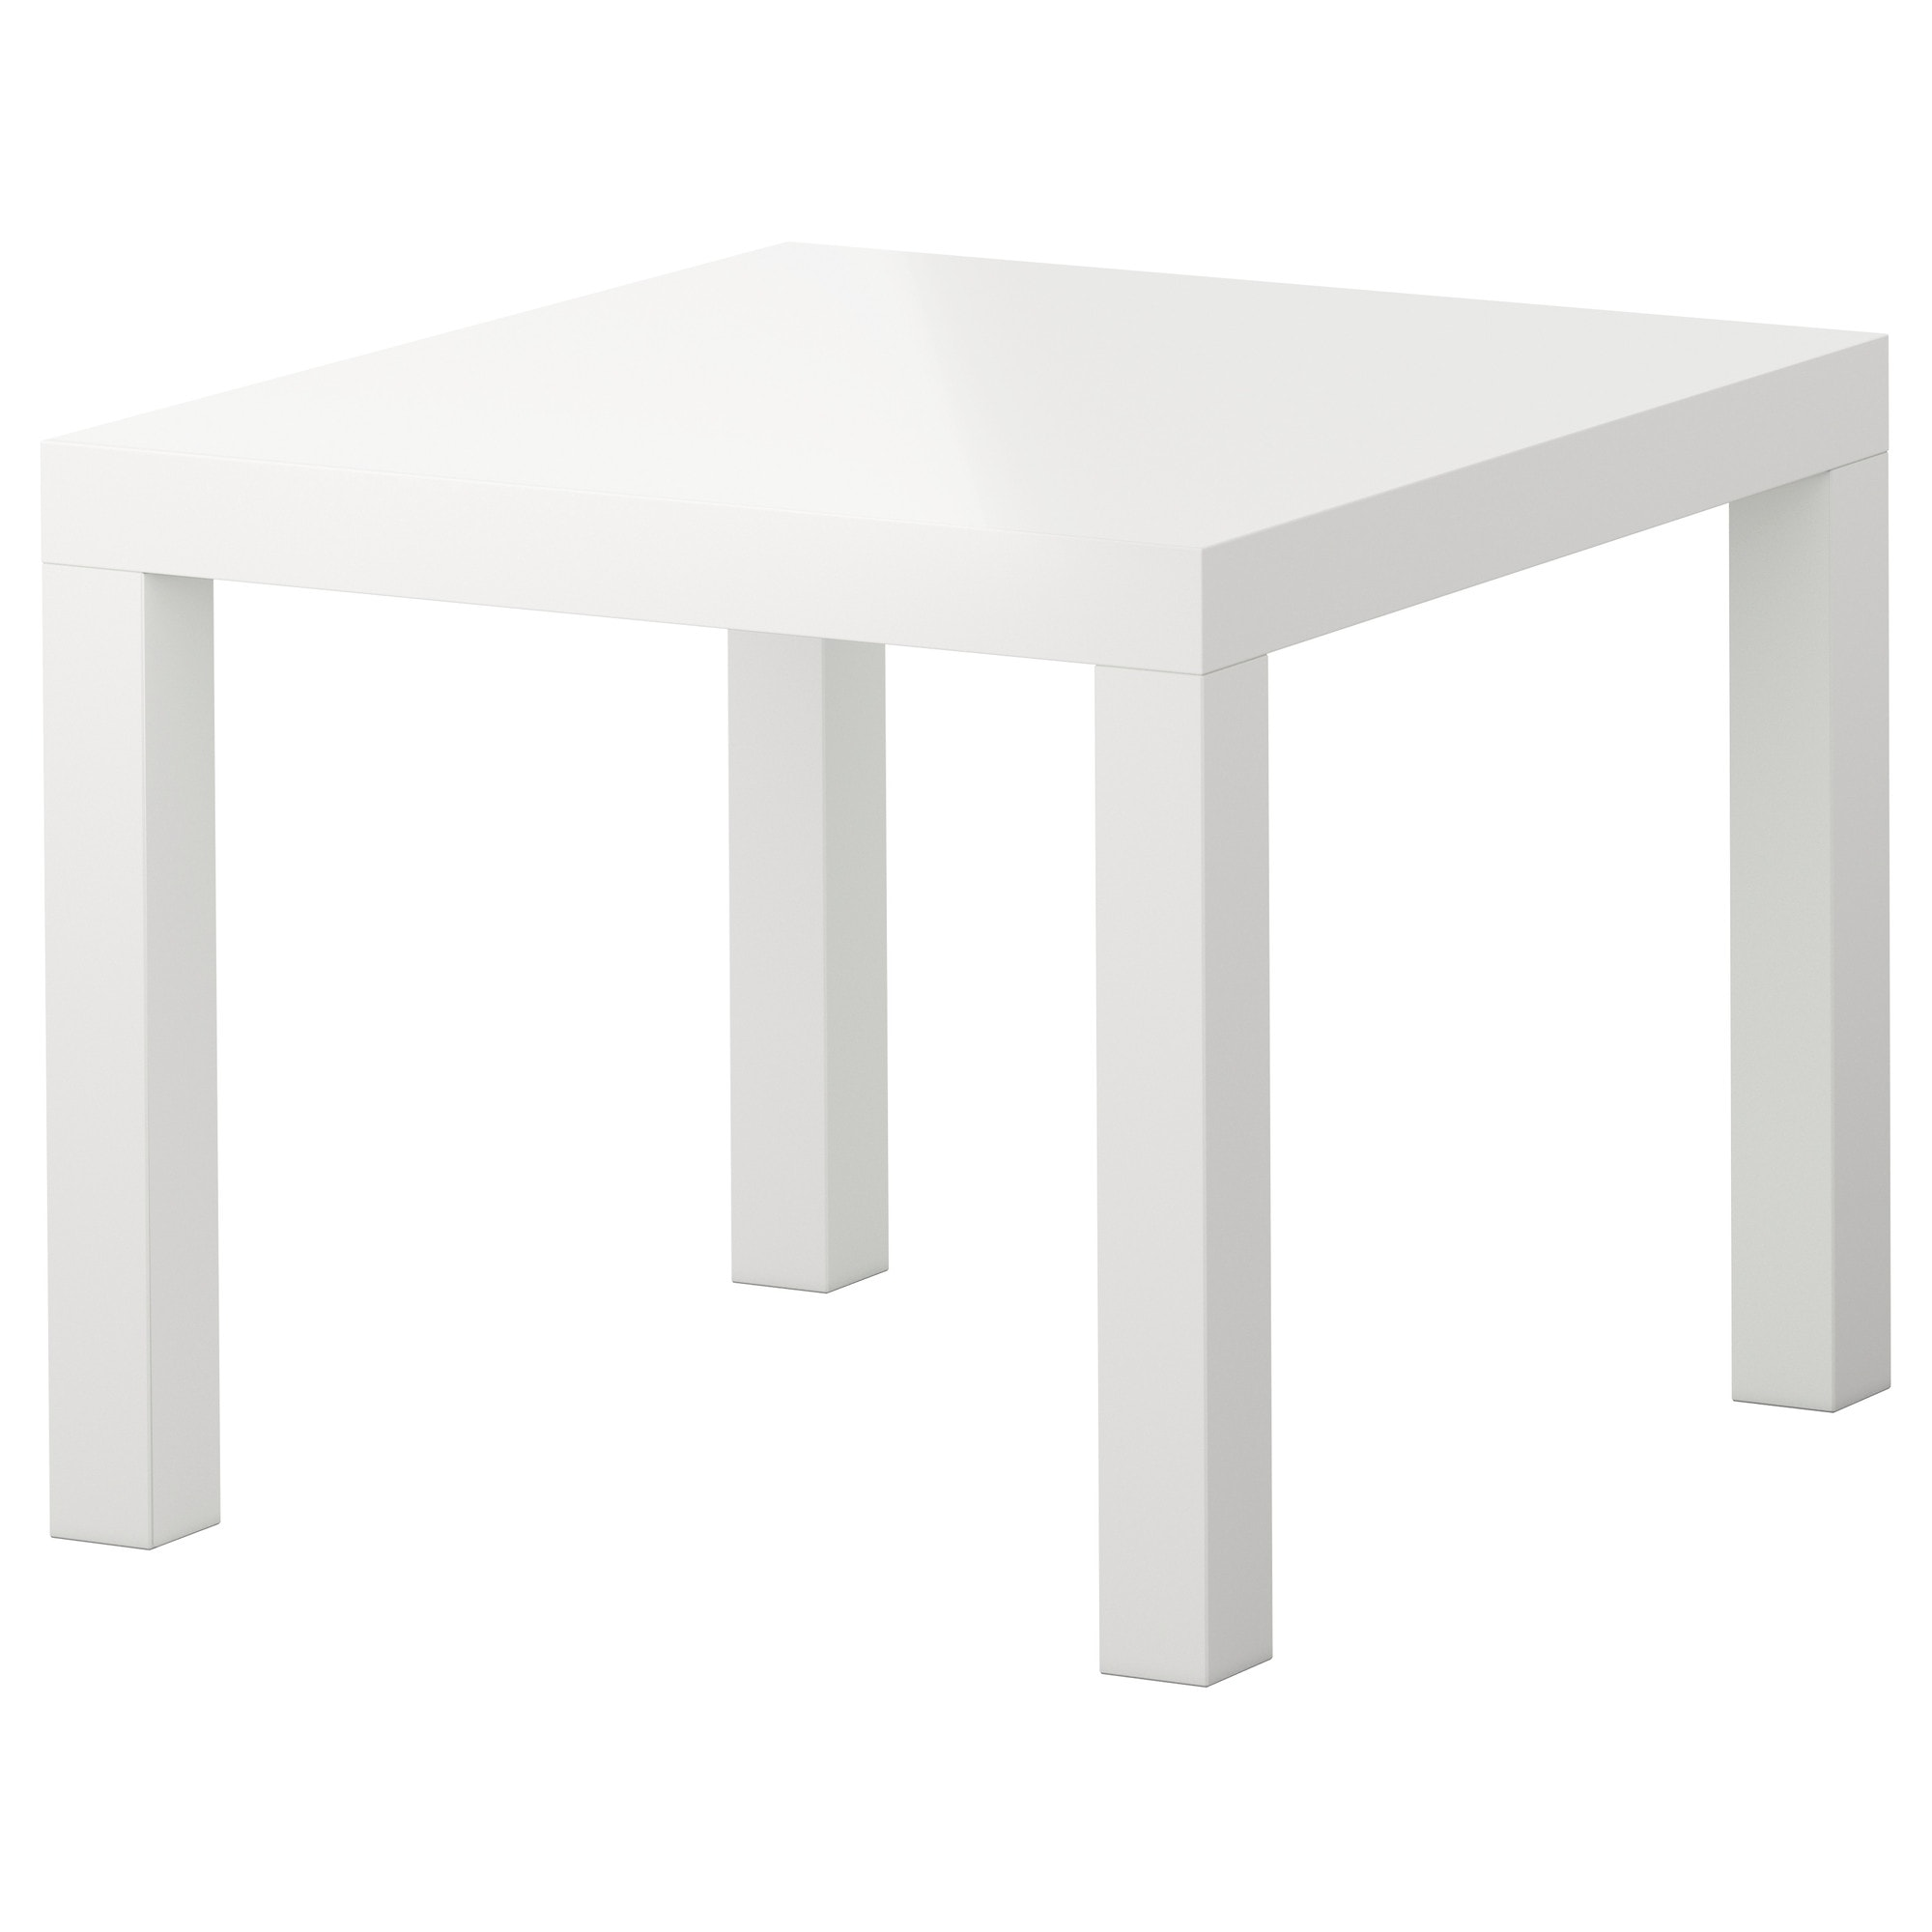 Tables Basses Et Tables D Appoint Ikea # Ikea Meuble Tv Scandinave